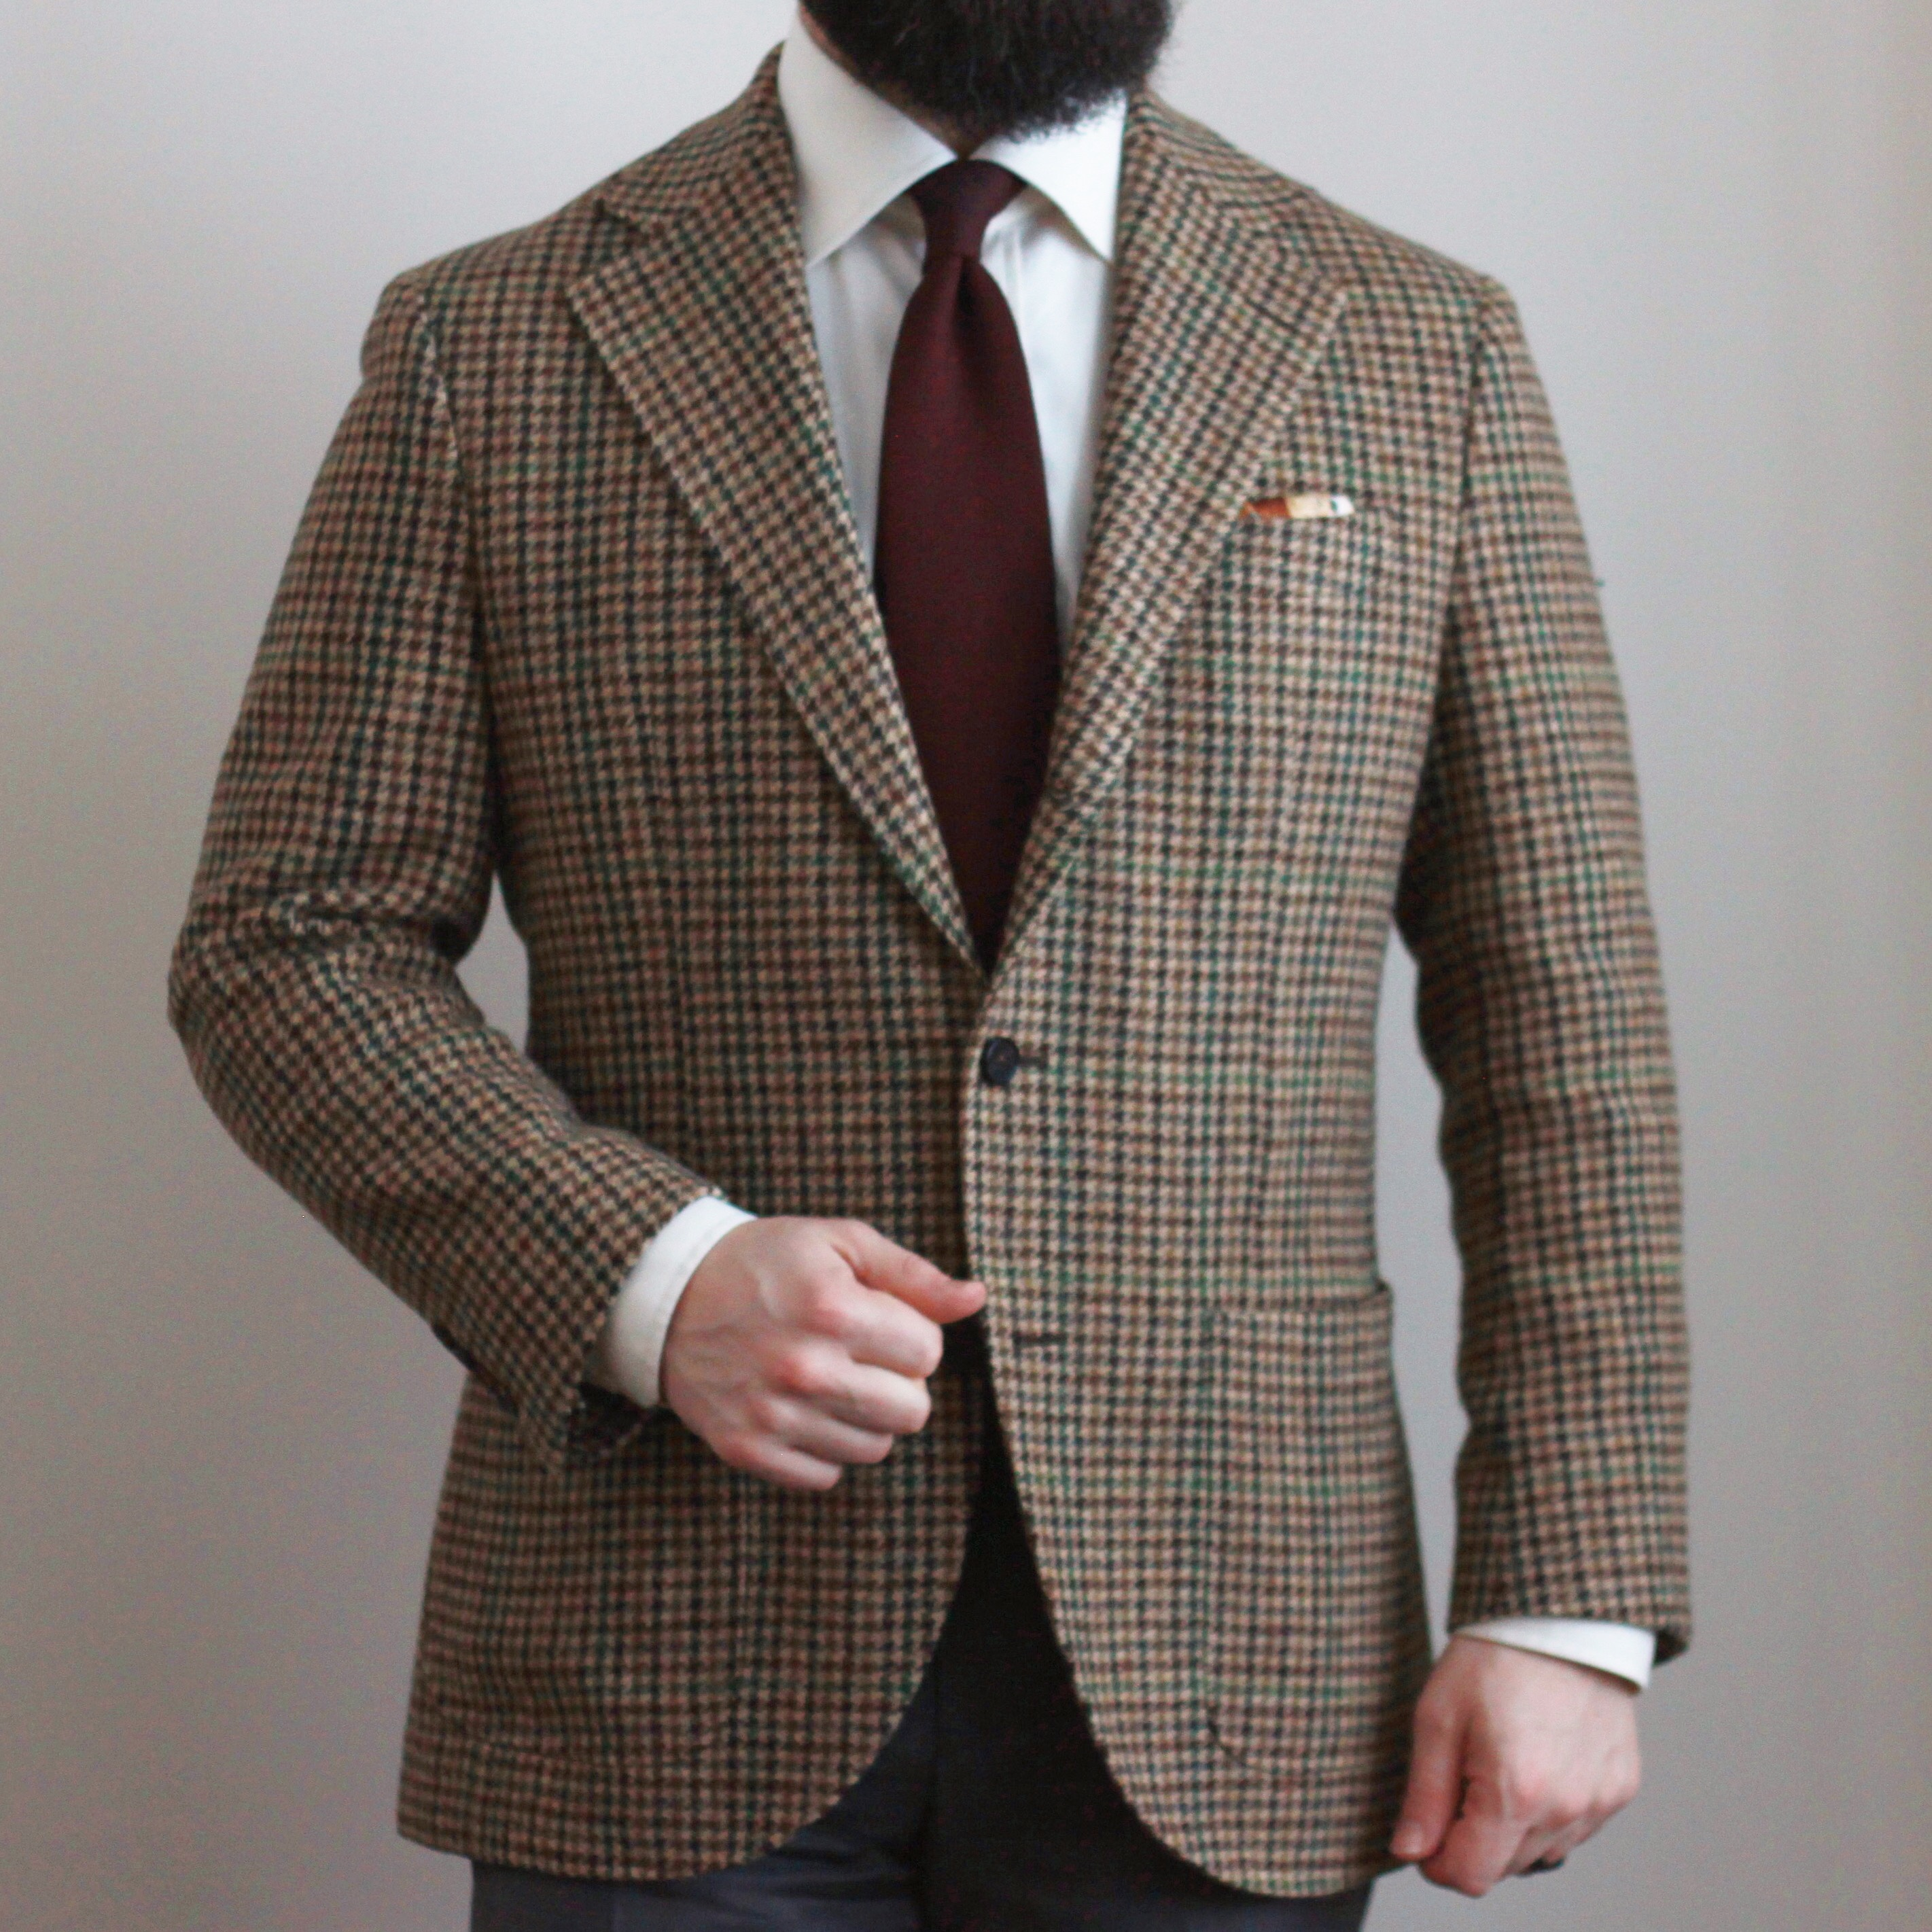 gunclub check, tweed, odd jacket, sport coat, navy grenadine, ecru shirt, bold tweed jacket